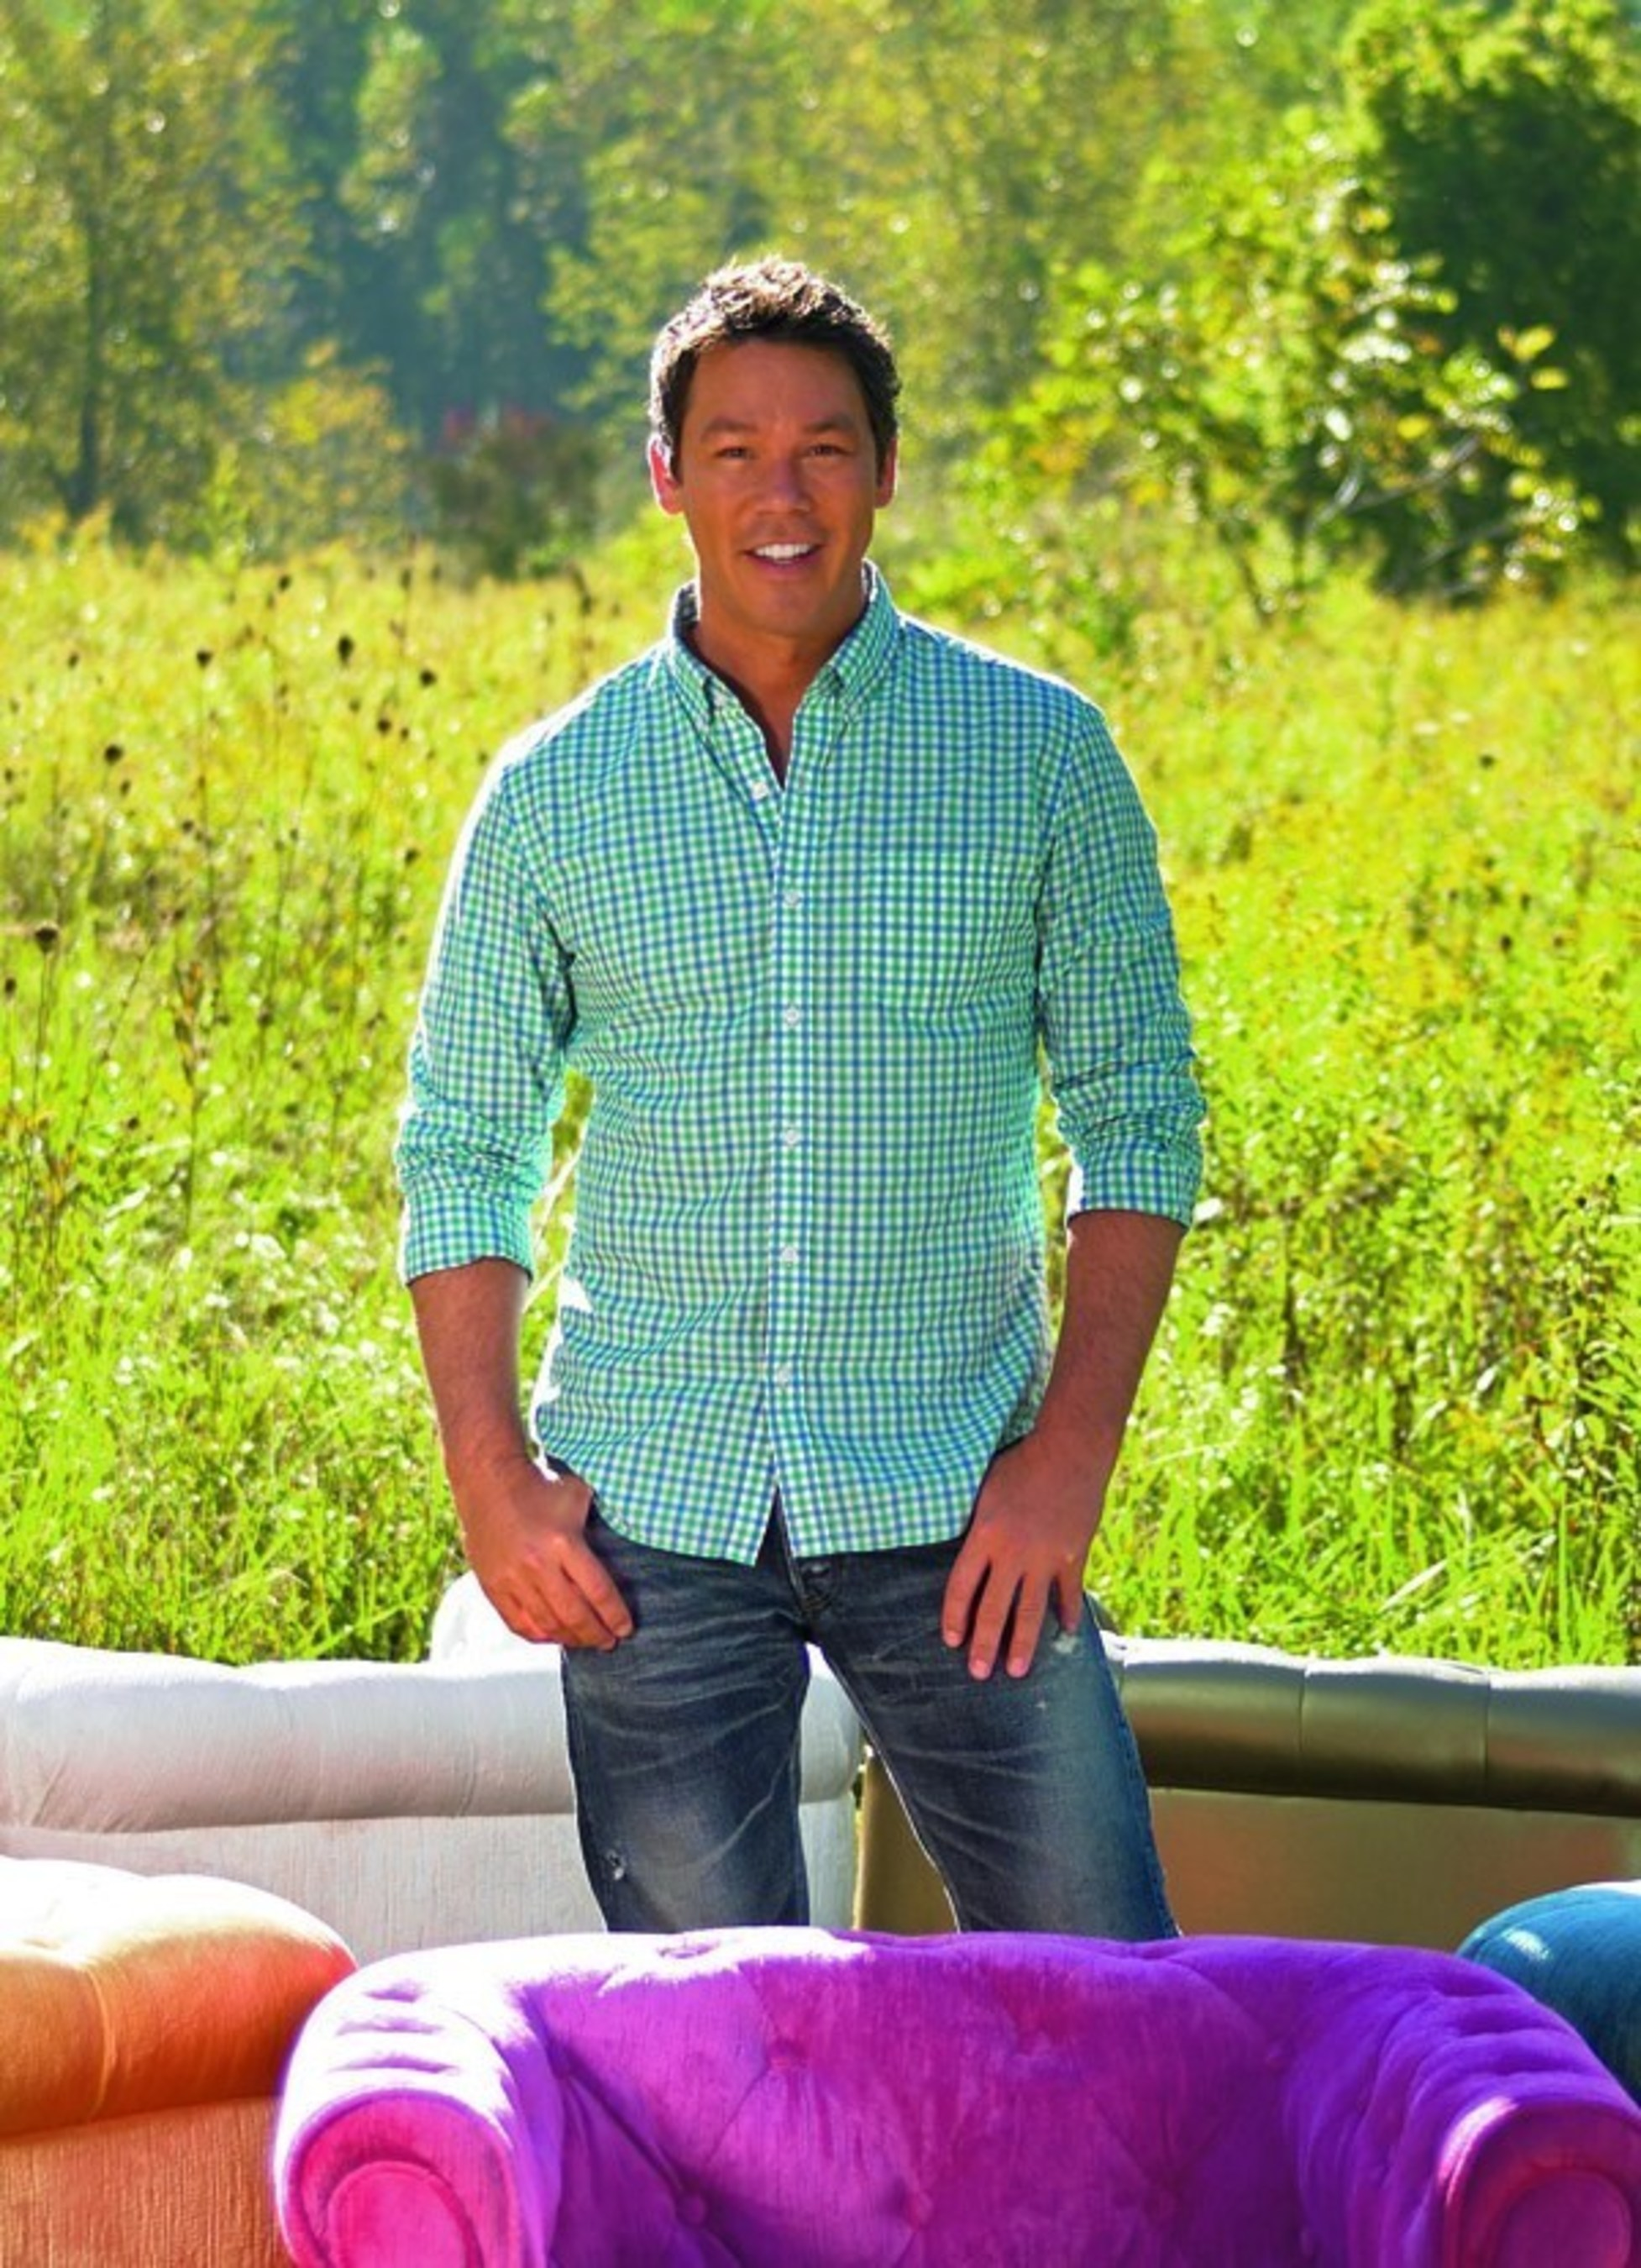 Grandin Road announces its new partnership with HGTV host and design star David Bromstad to launch David Bromstad Home by Grandin Road.